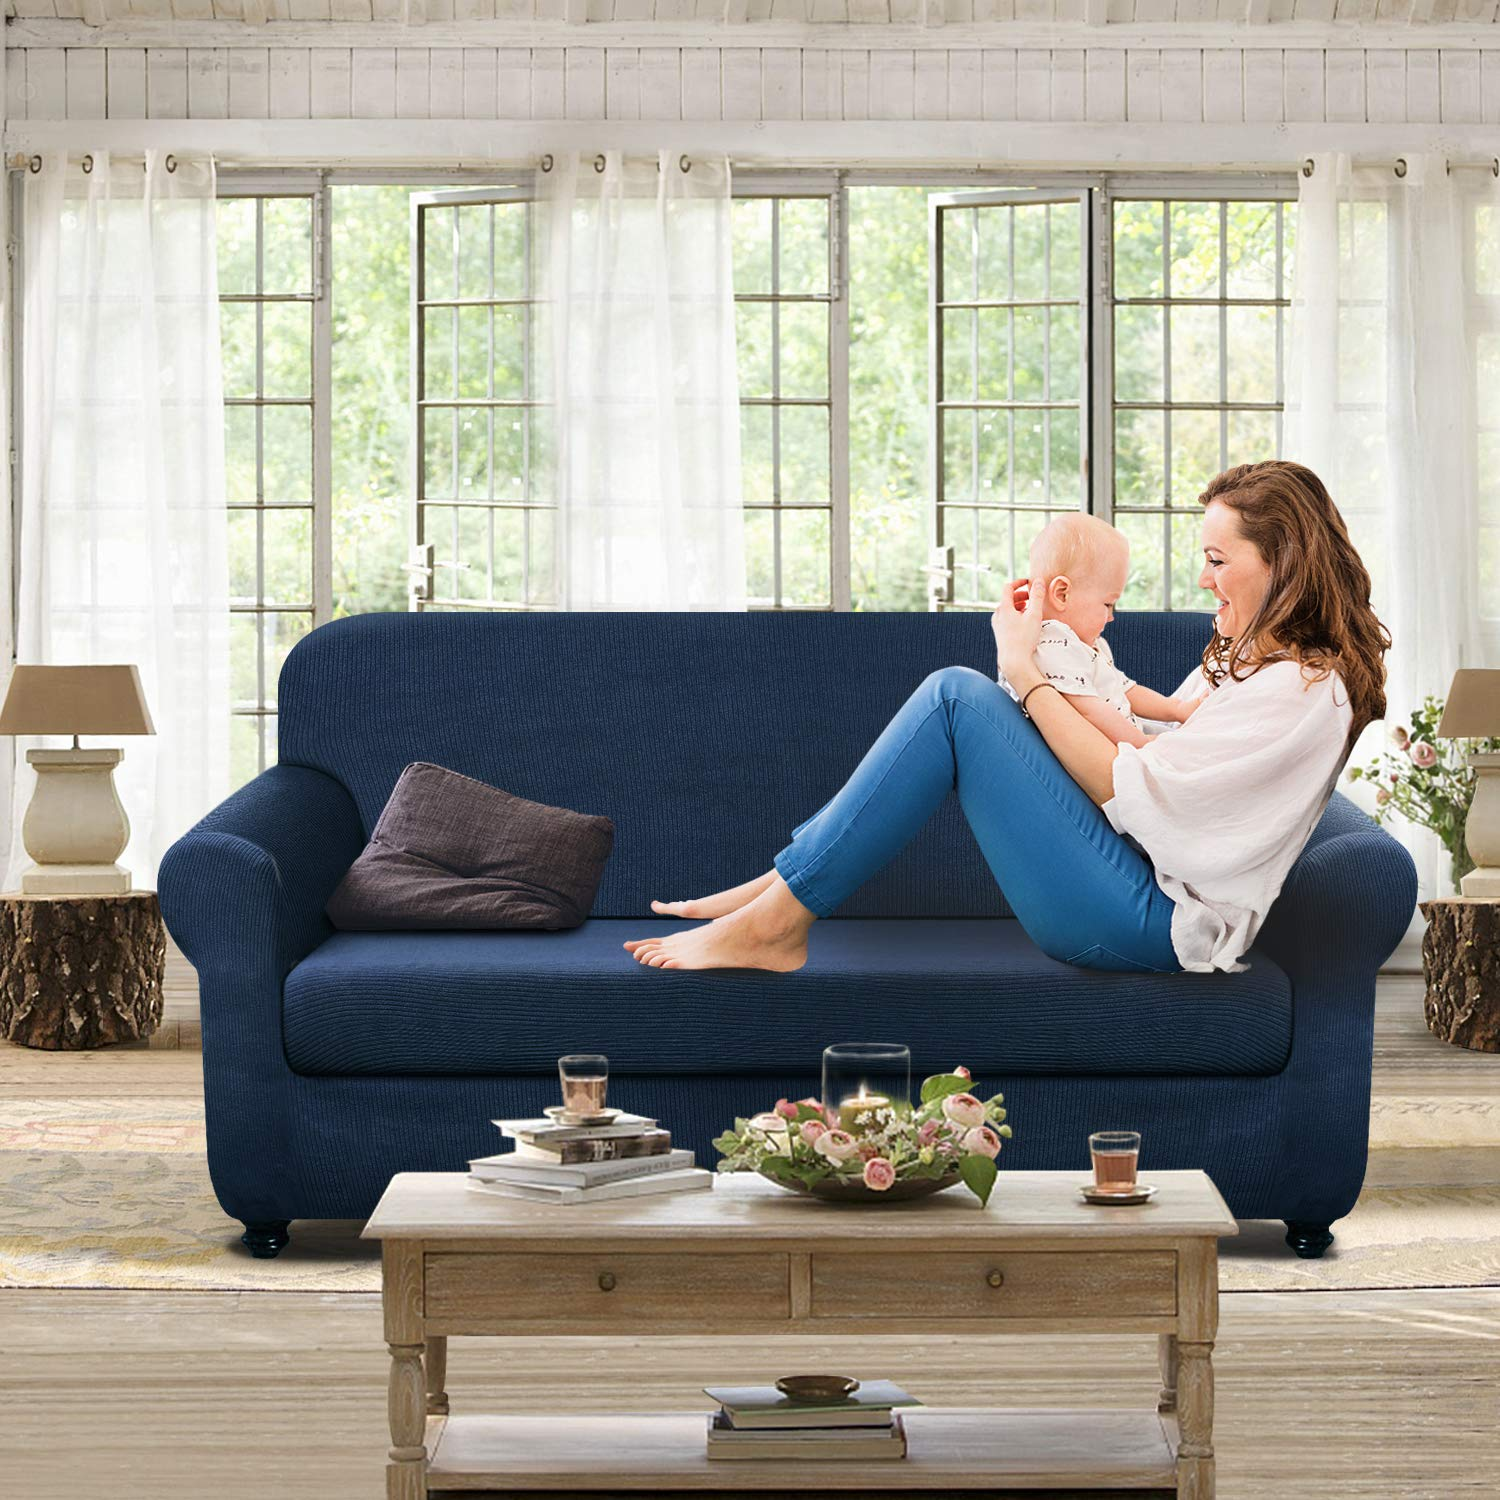 Phenomenal Details About Chelzen Stretch Sofa Covers Living Room 2 Piece Extra Large Couch Covers Striped Machost Co Dining Chair Design Ideas Machostcouk